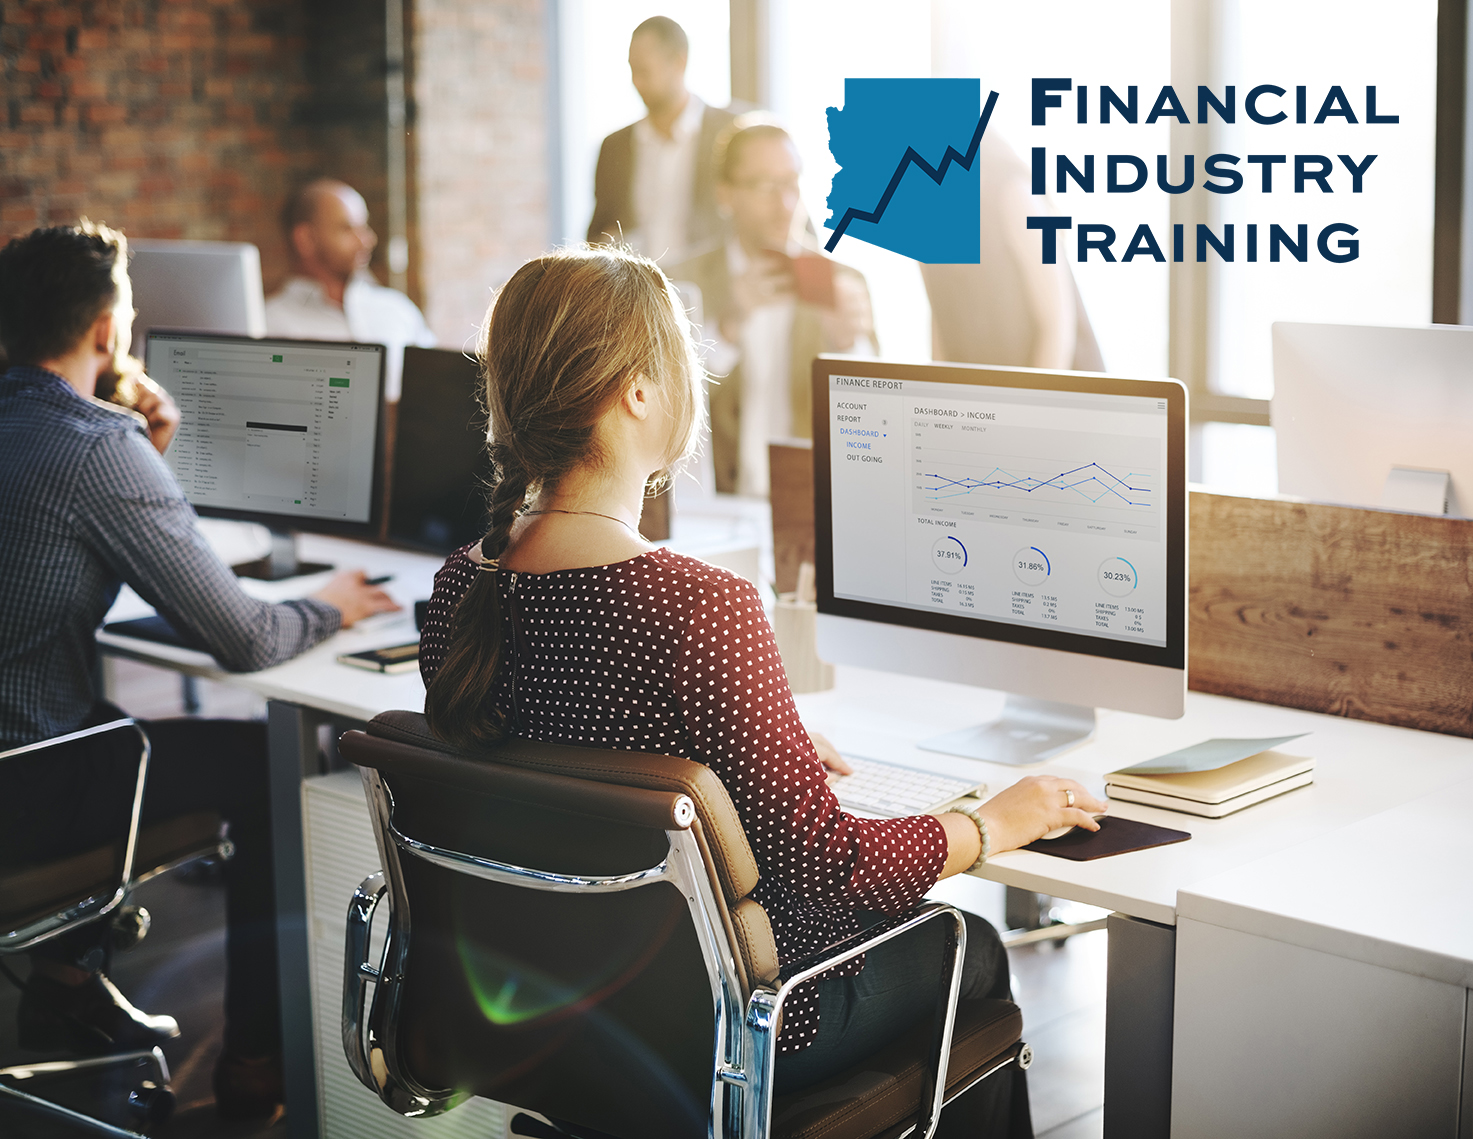 Financial Industry Training